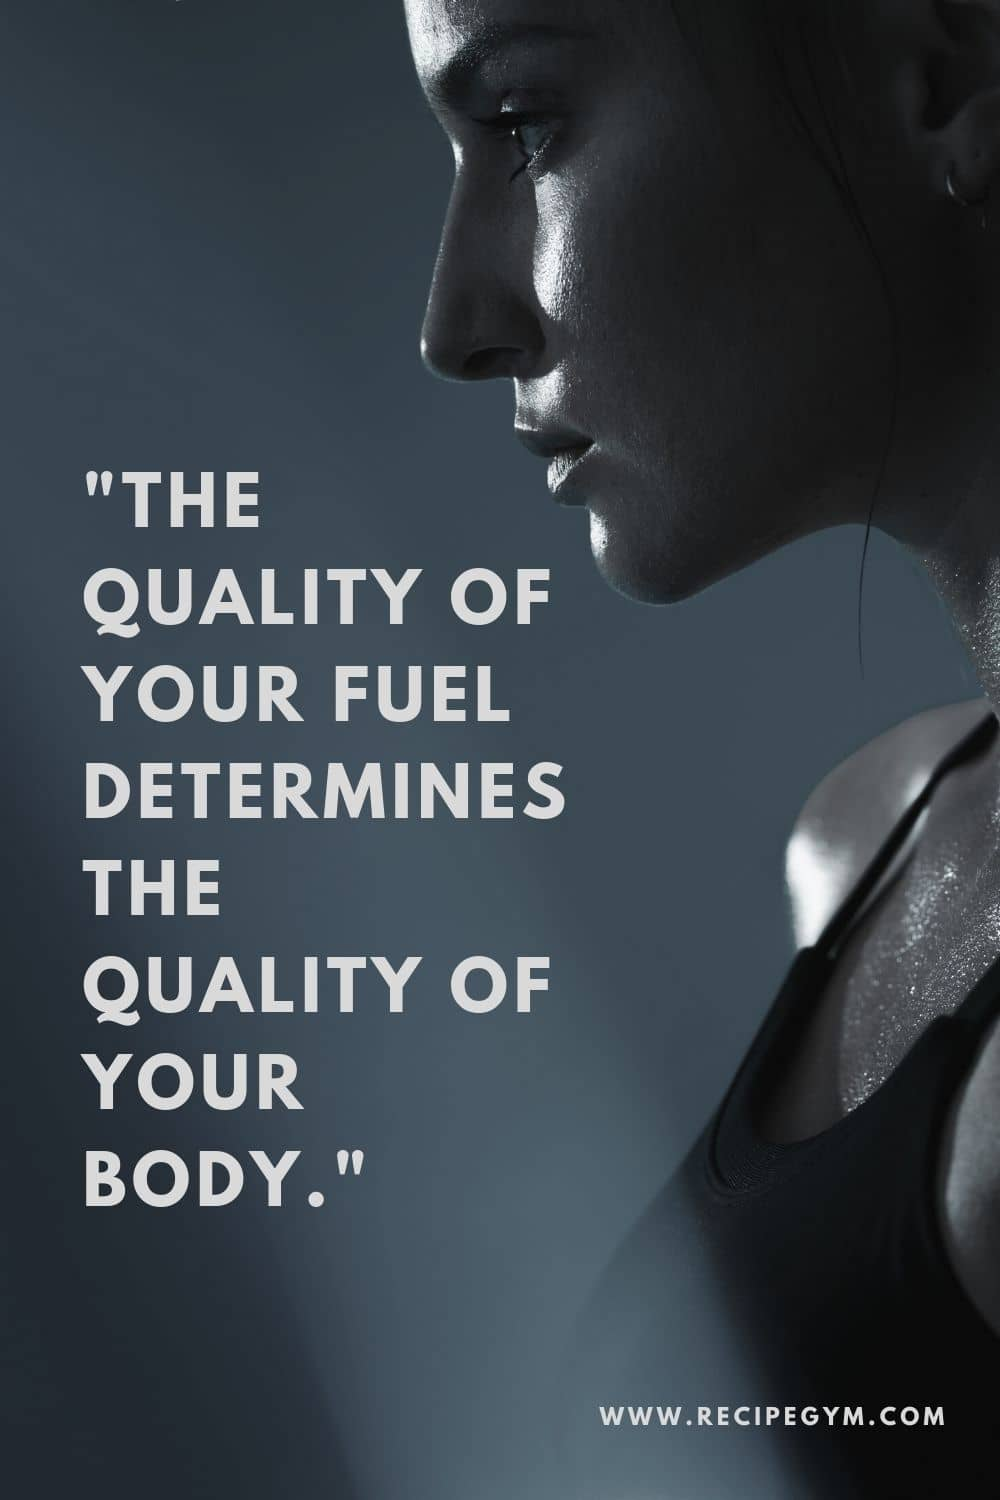 The quality of your fuel determines the quality of your body